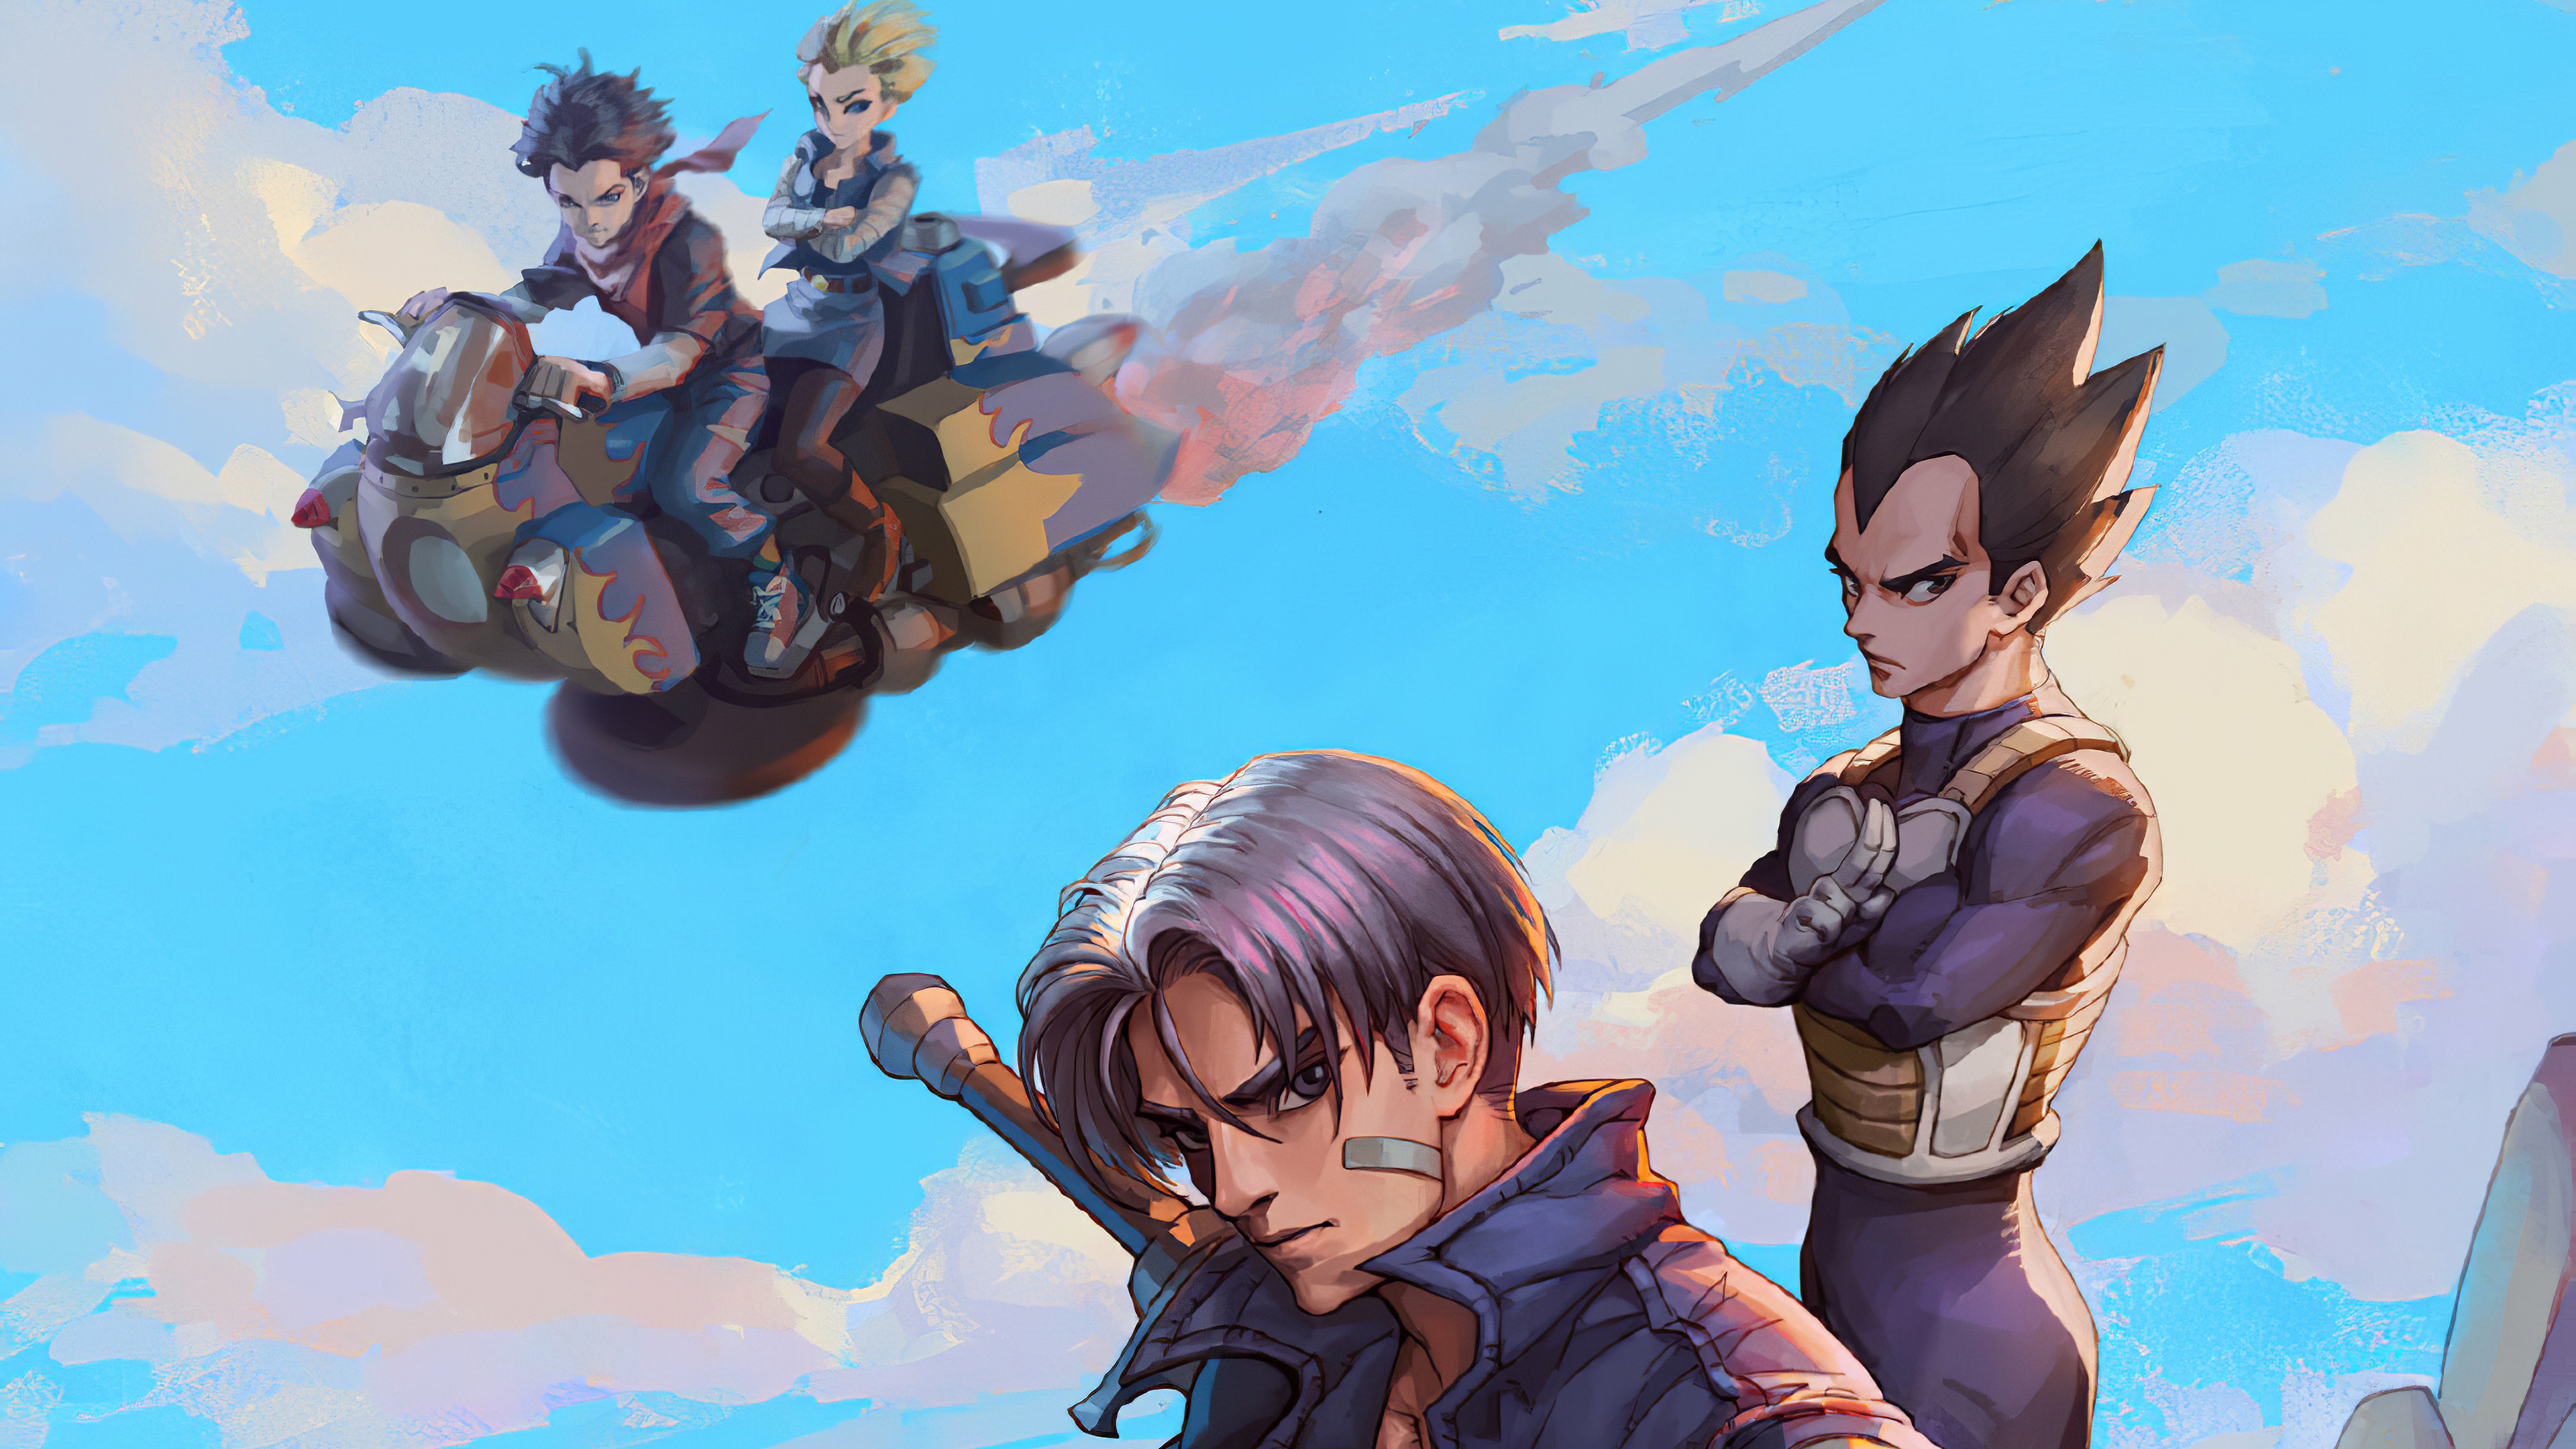 Trunks Hd Anime 4k Wallpapers Images Backgrounds Photos And Pictures